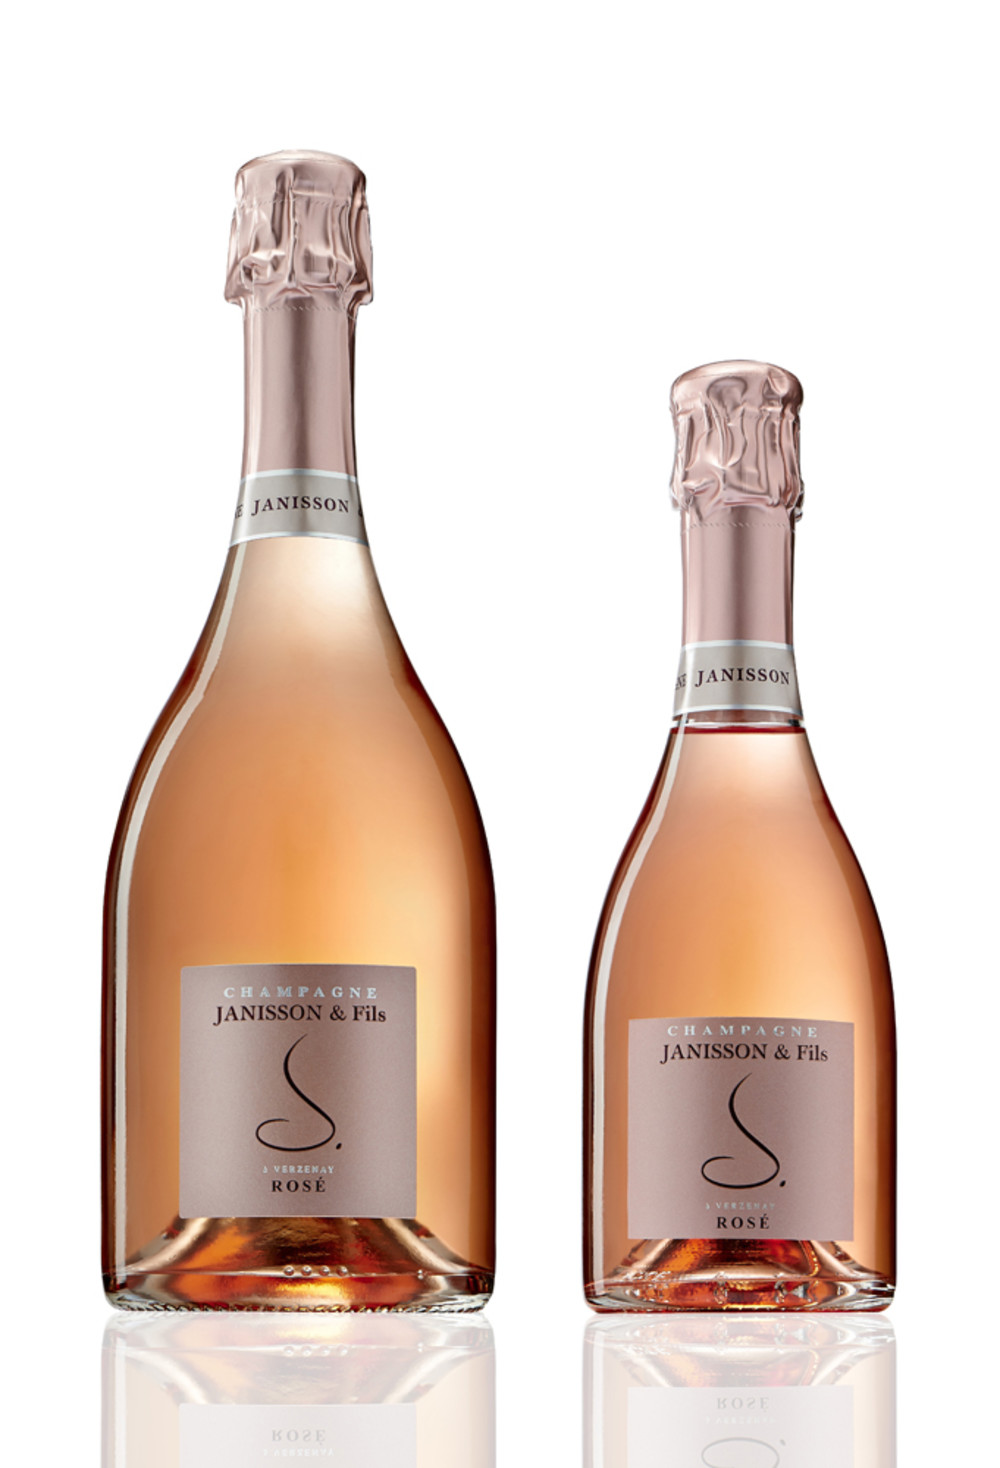 Champagne JANISSON_2016_Duo ROSE.jpg